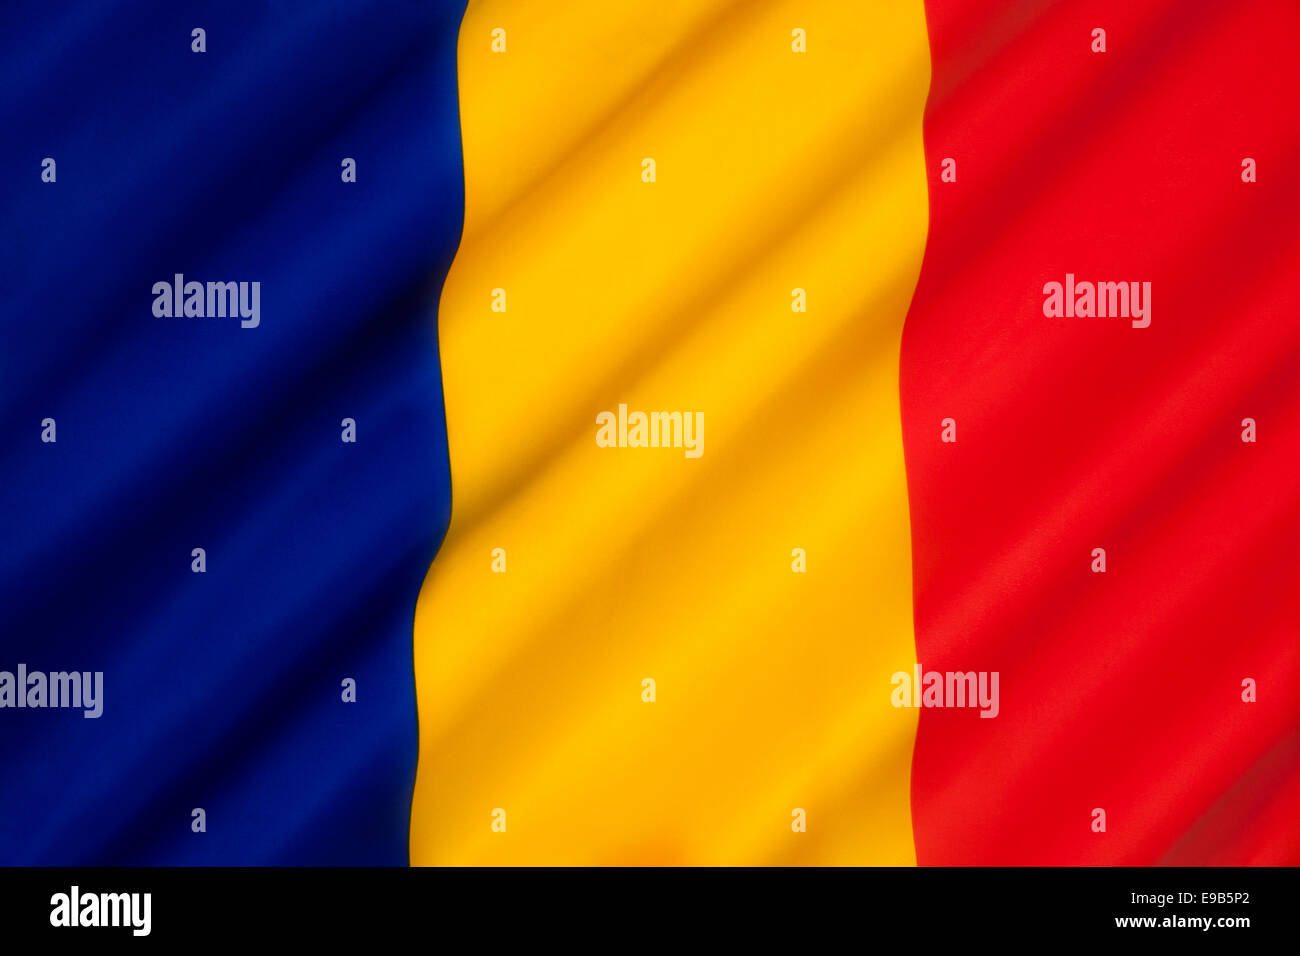 The national flag of Chad - Stock Image